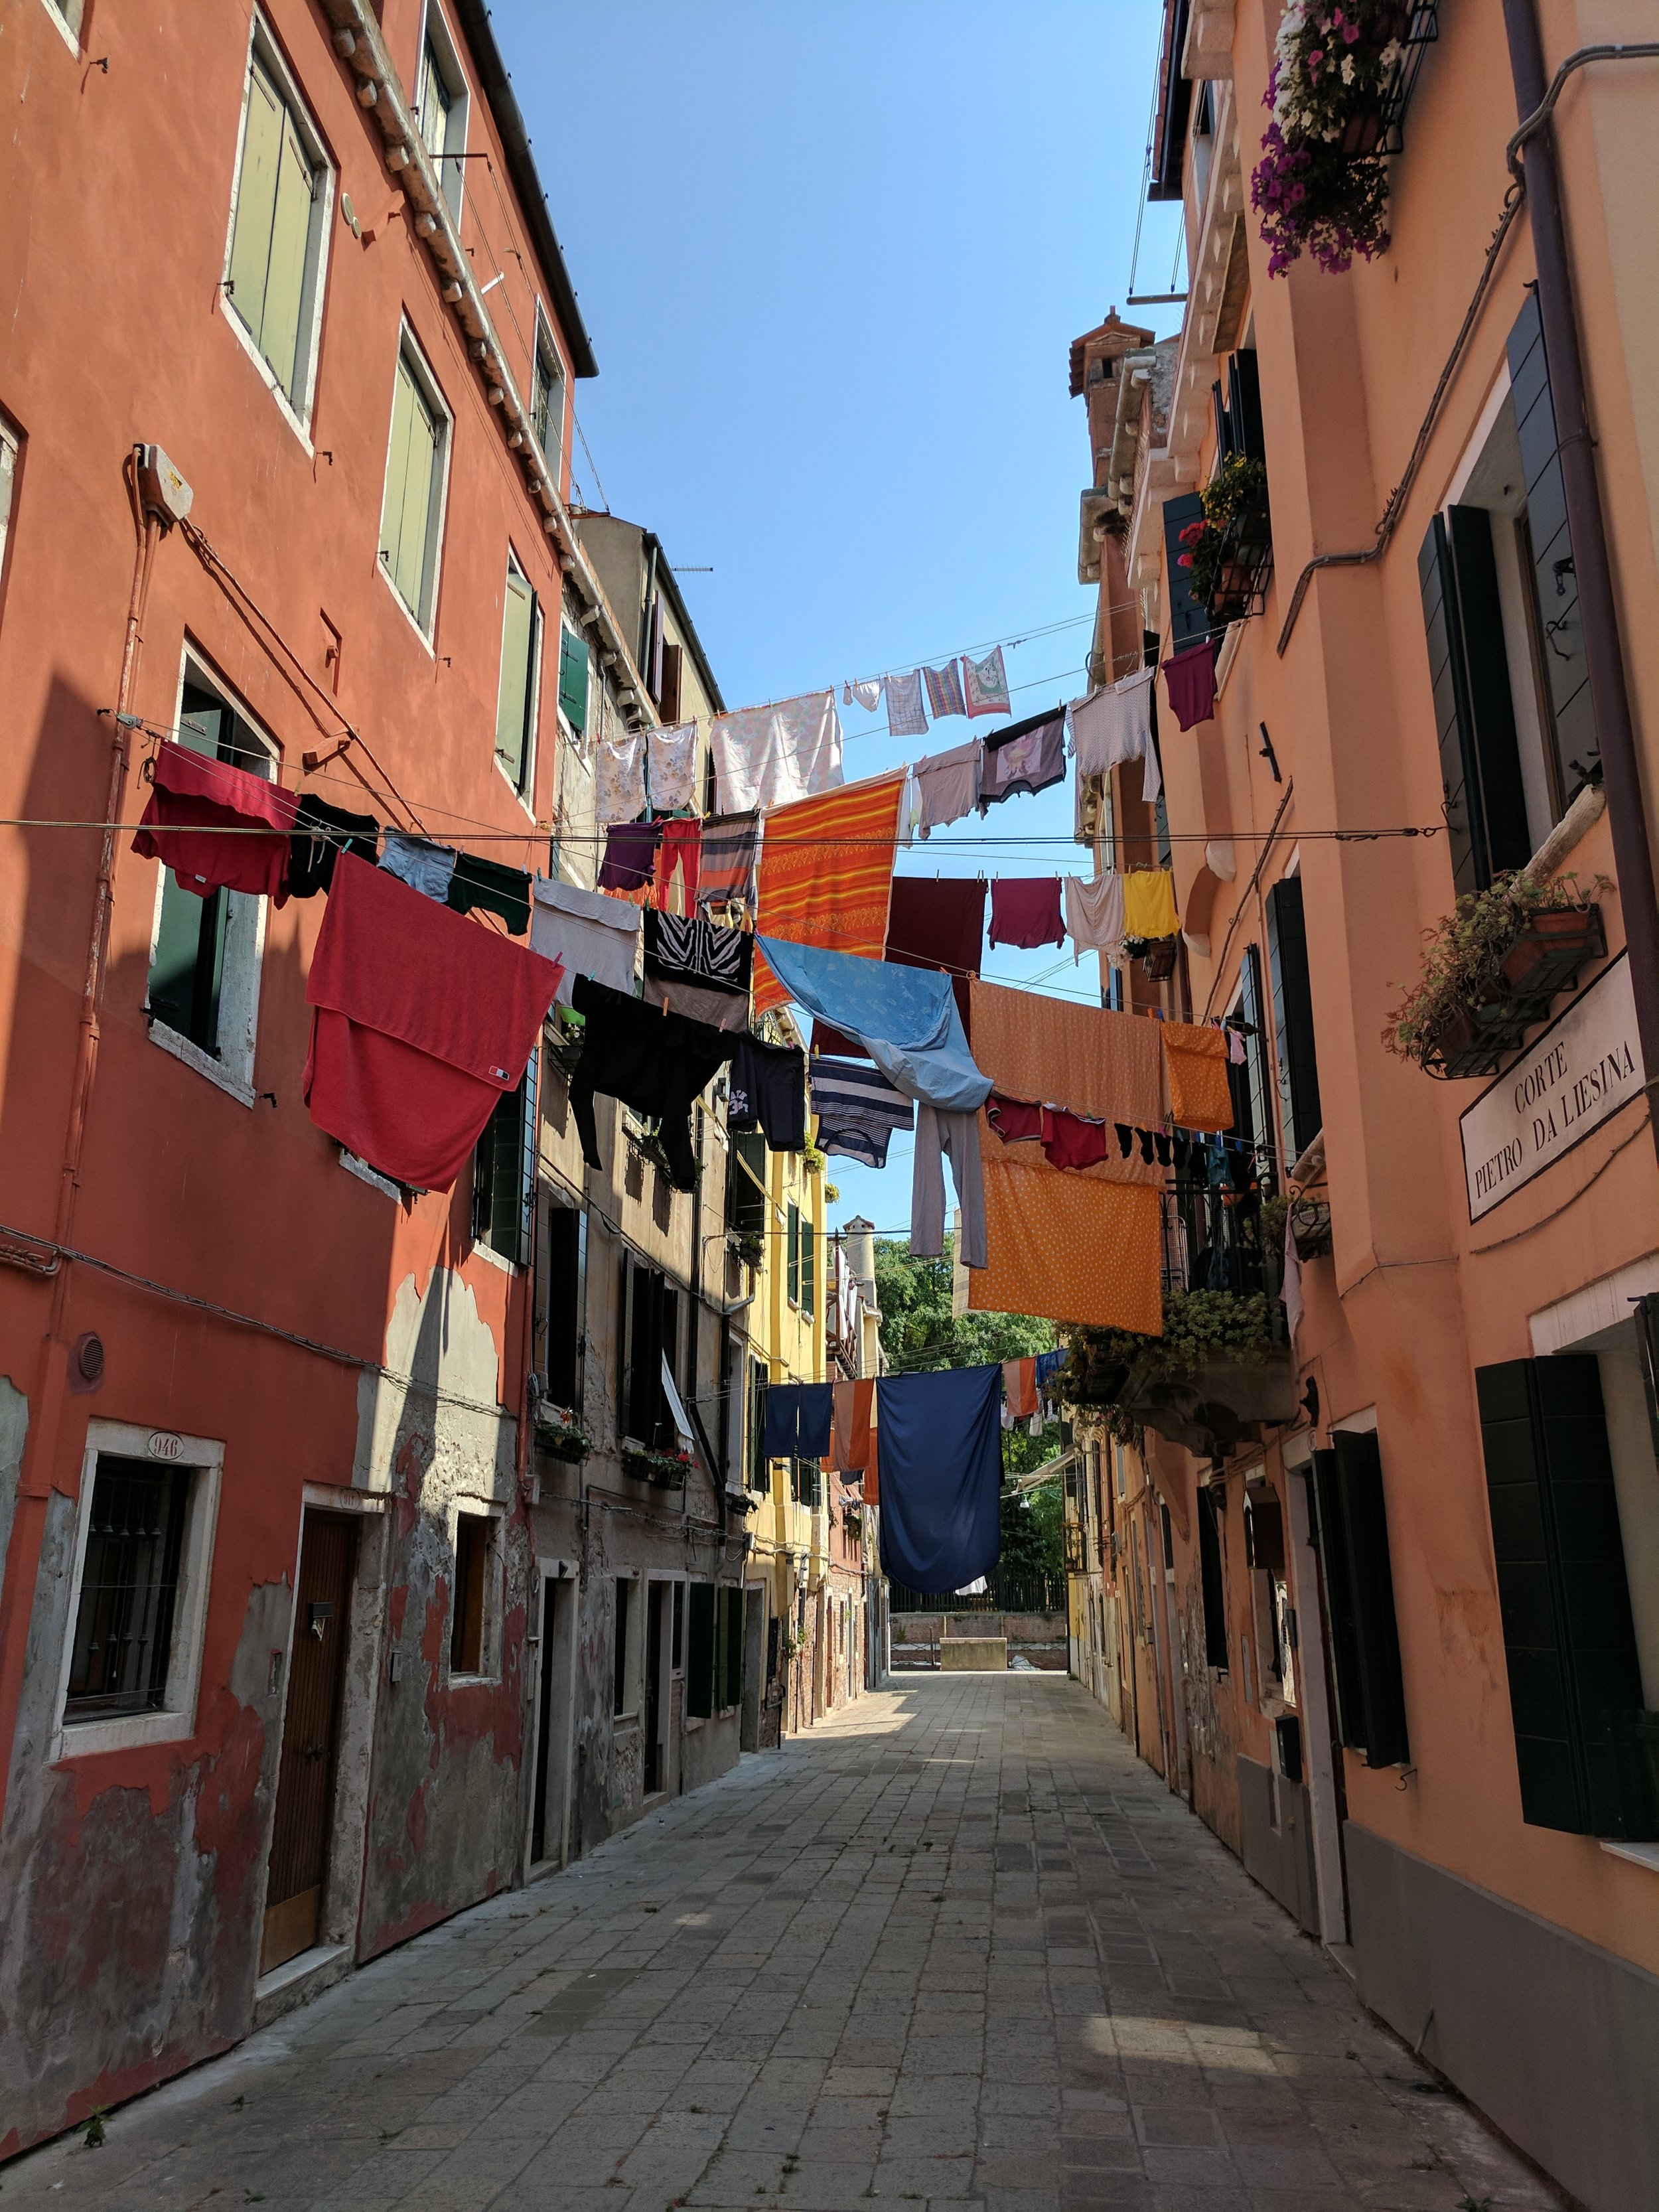 View of a Venetian Alley near Giardini della Biennale  Photo Credit: Jonathan Morgan